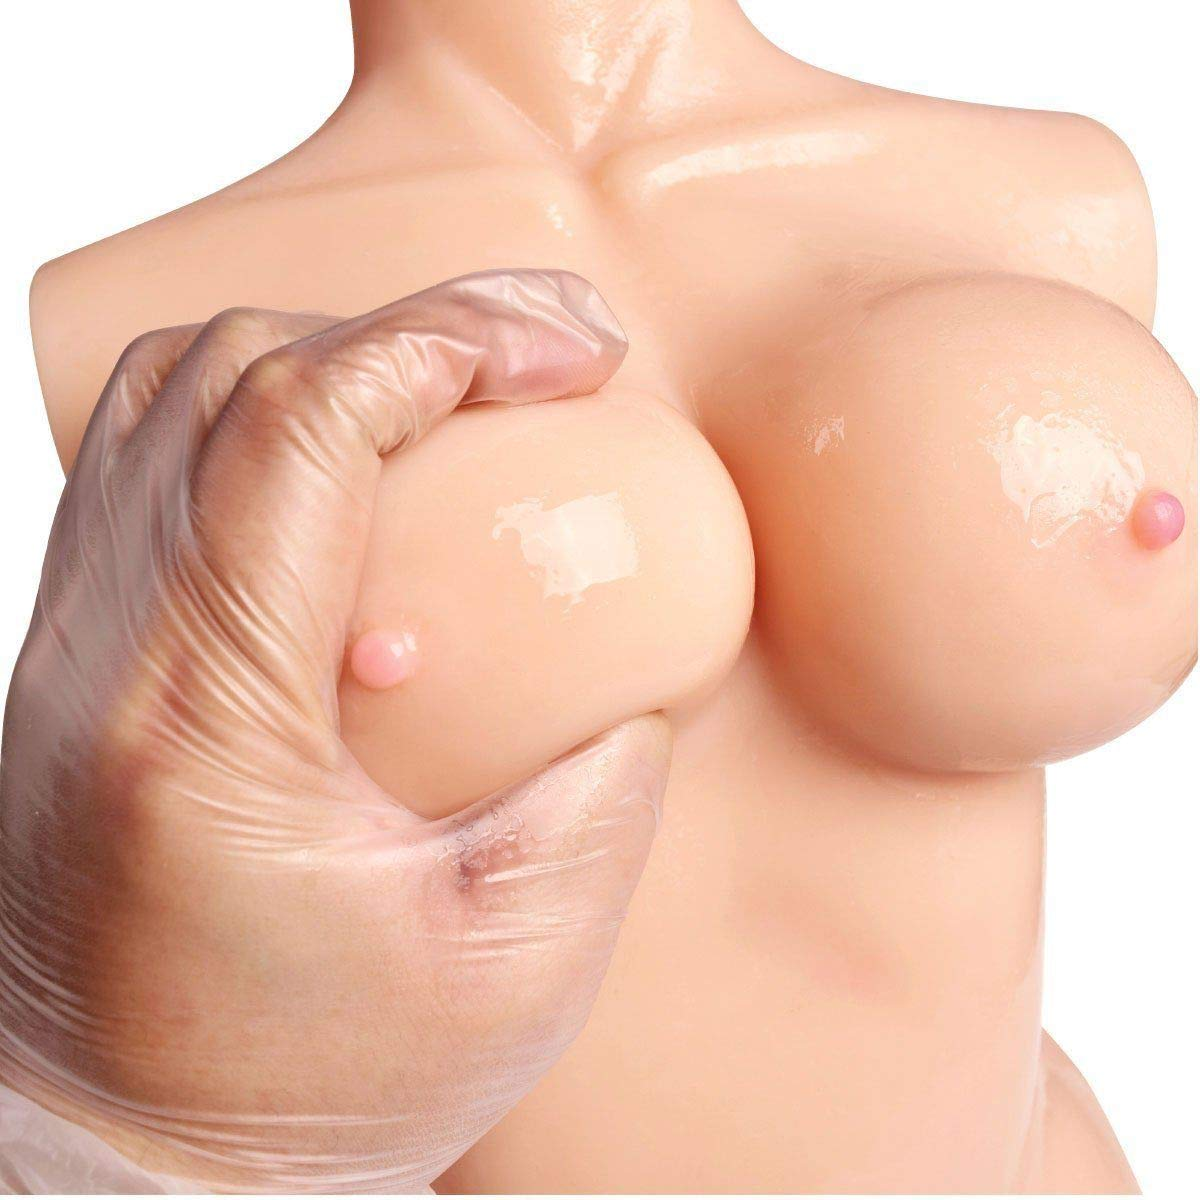 3D Lifelike Love Doles for Man Male Adult Toy Soft Silcone Women Full Body C Cup Torso Pussycat Love Toy for Men 100% Safe Men's Best Relaxing Gifts (10x6.2x4 in) by GOONANA (Image #3)